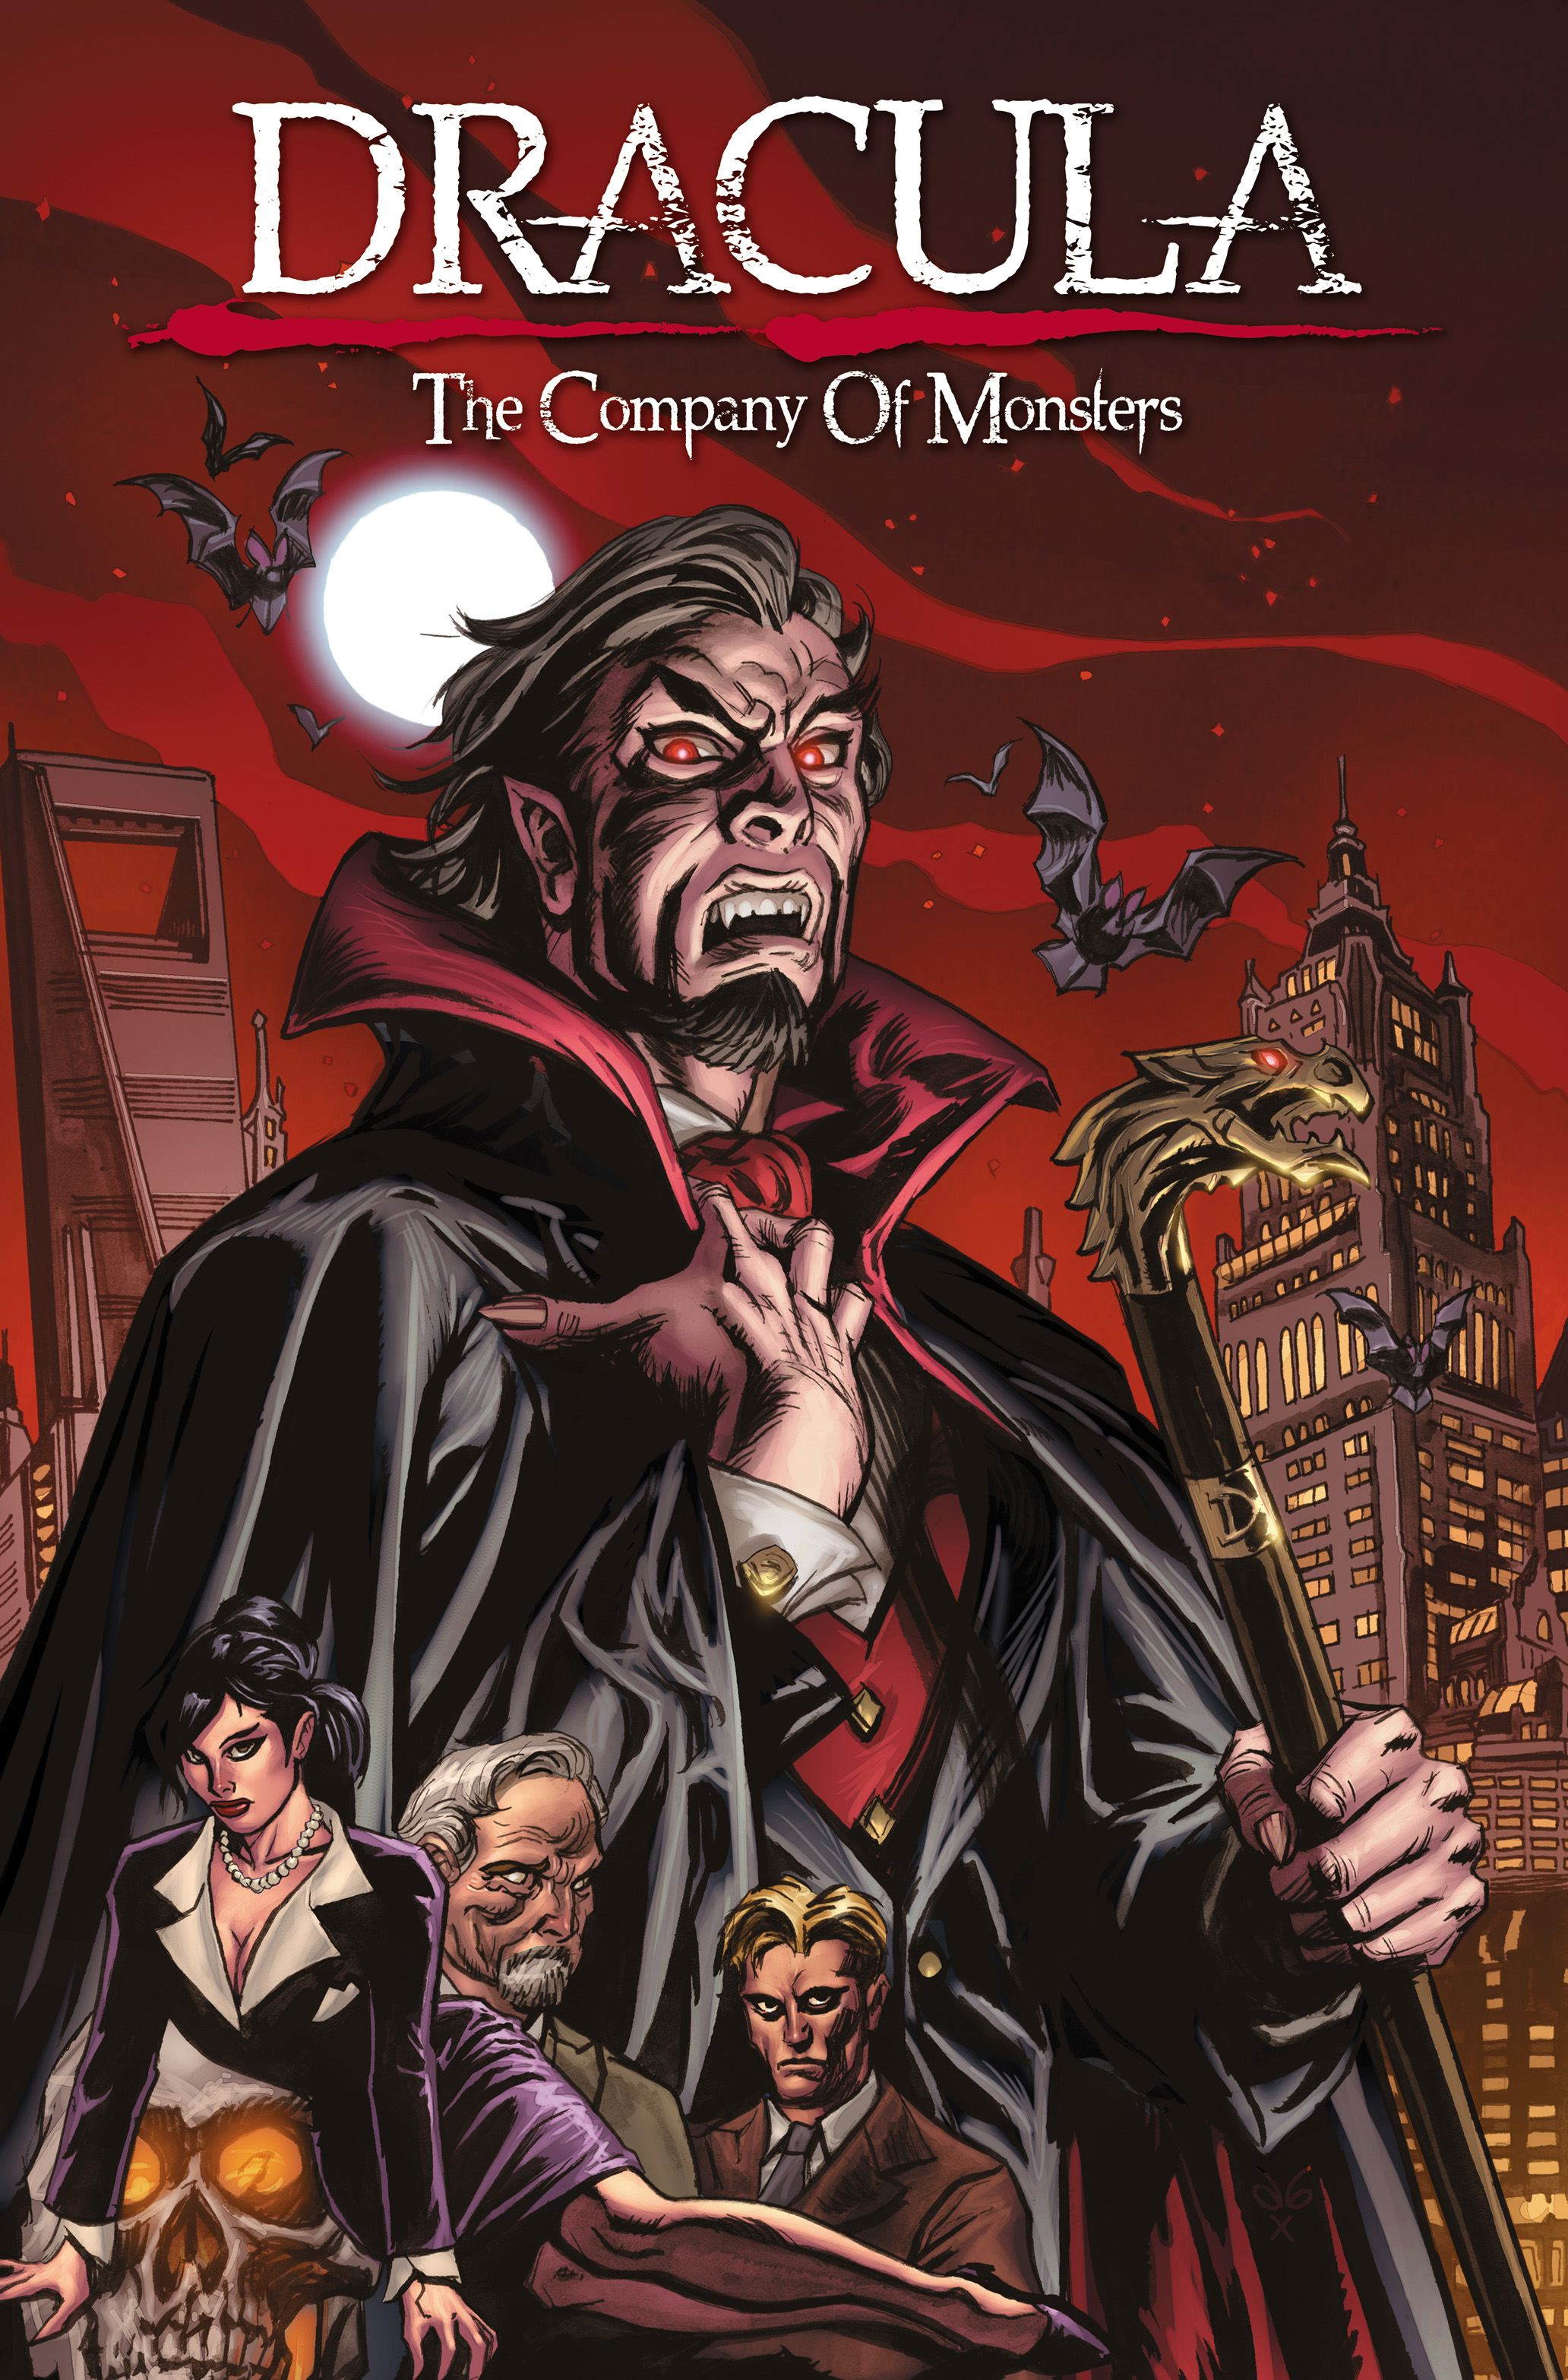 Dracula the company of monsters vol 1 9781608860449 hr